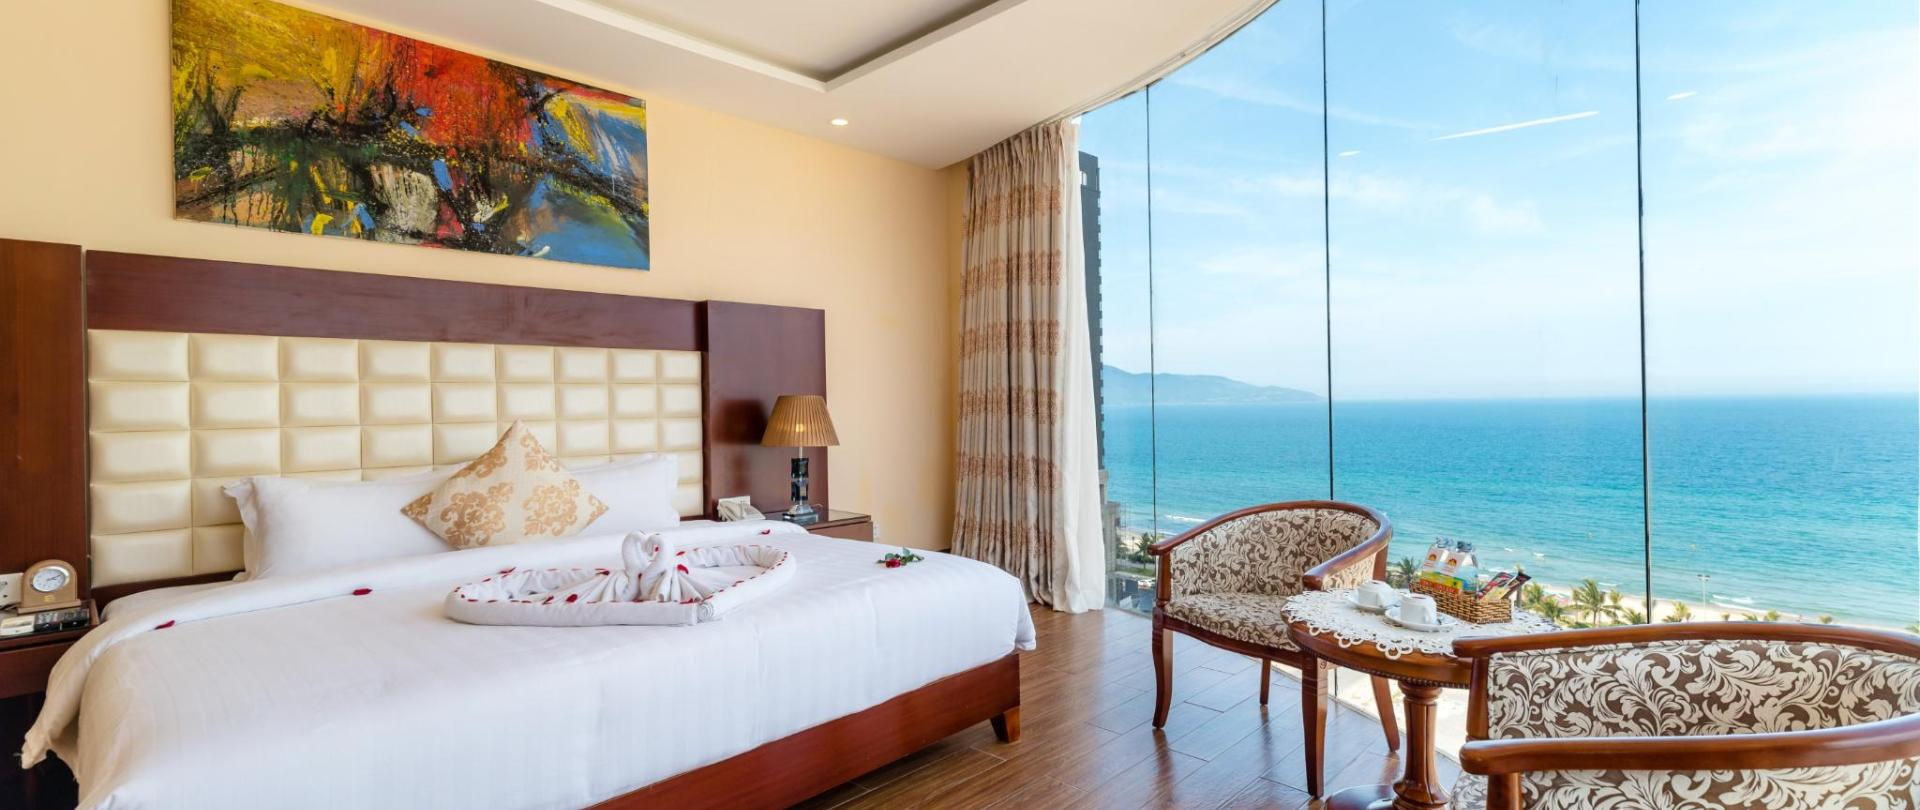 Deluxe Room with Sea View.jpg